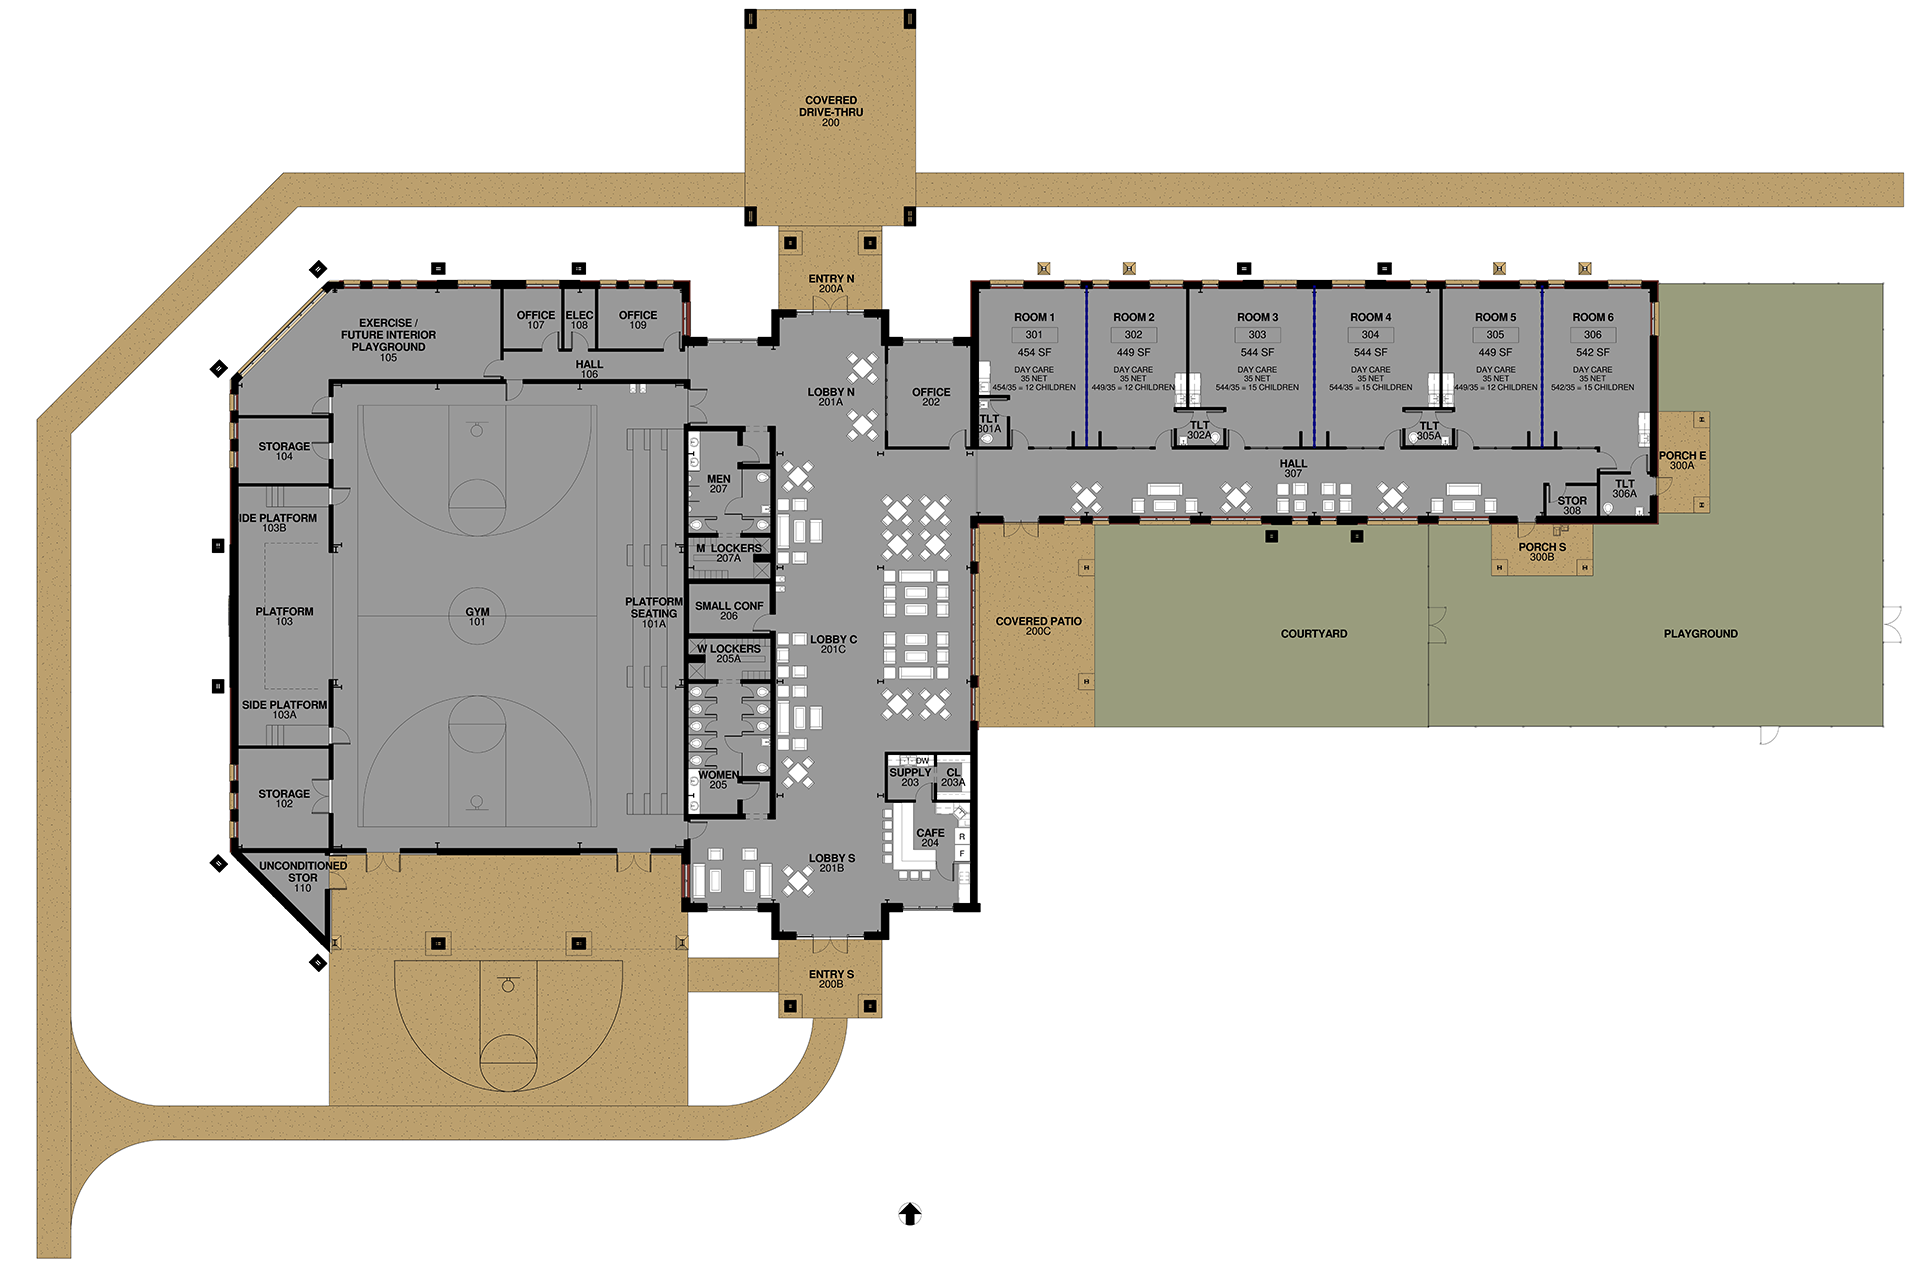 Floor plan of the initial community center building